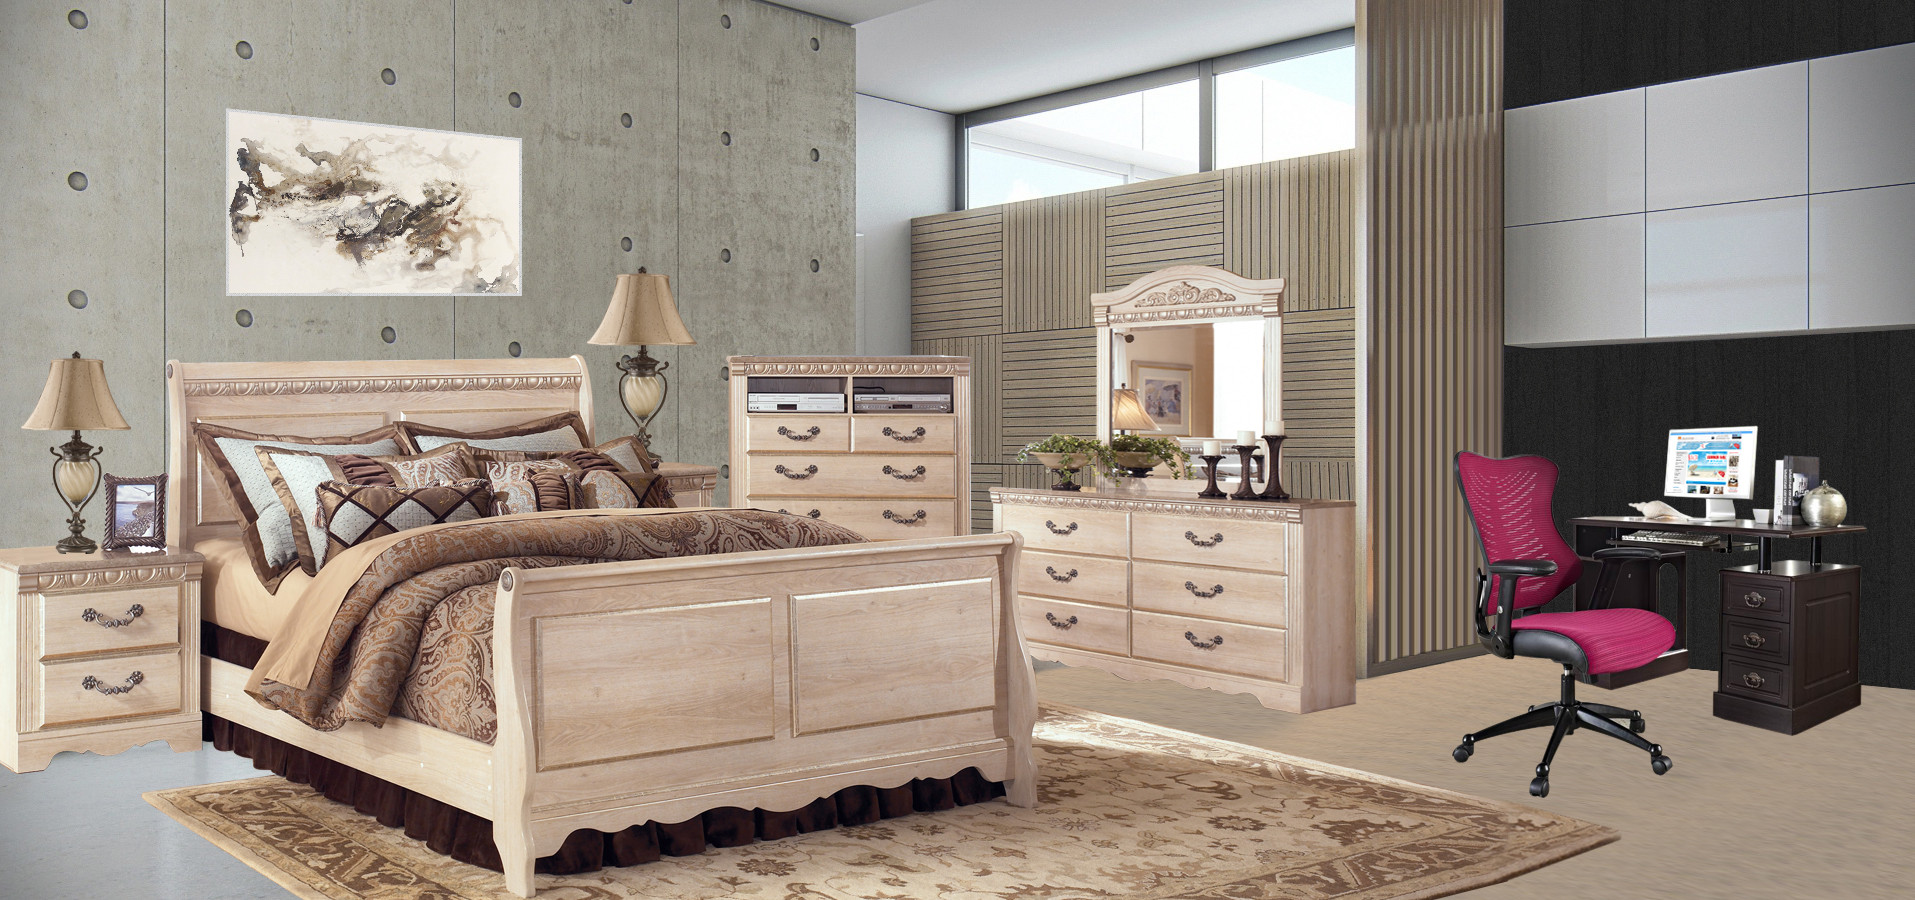 Bedroom Furniture For Couples Houzz